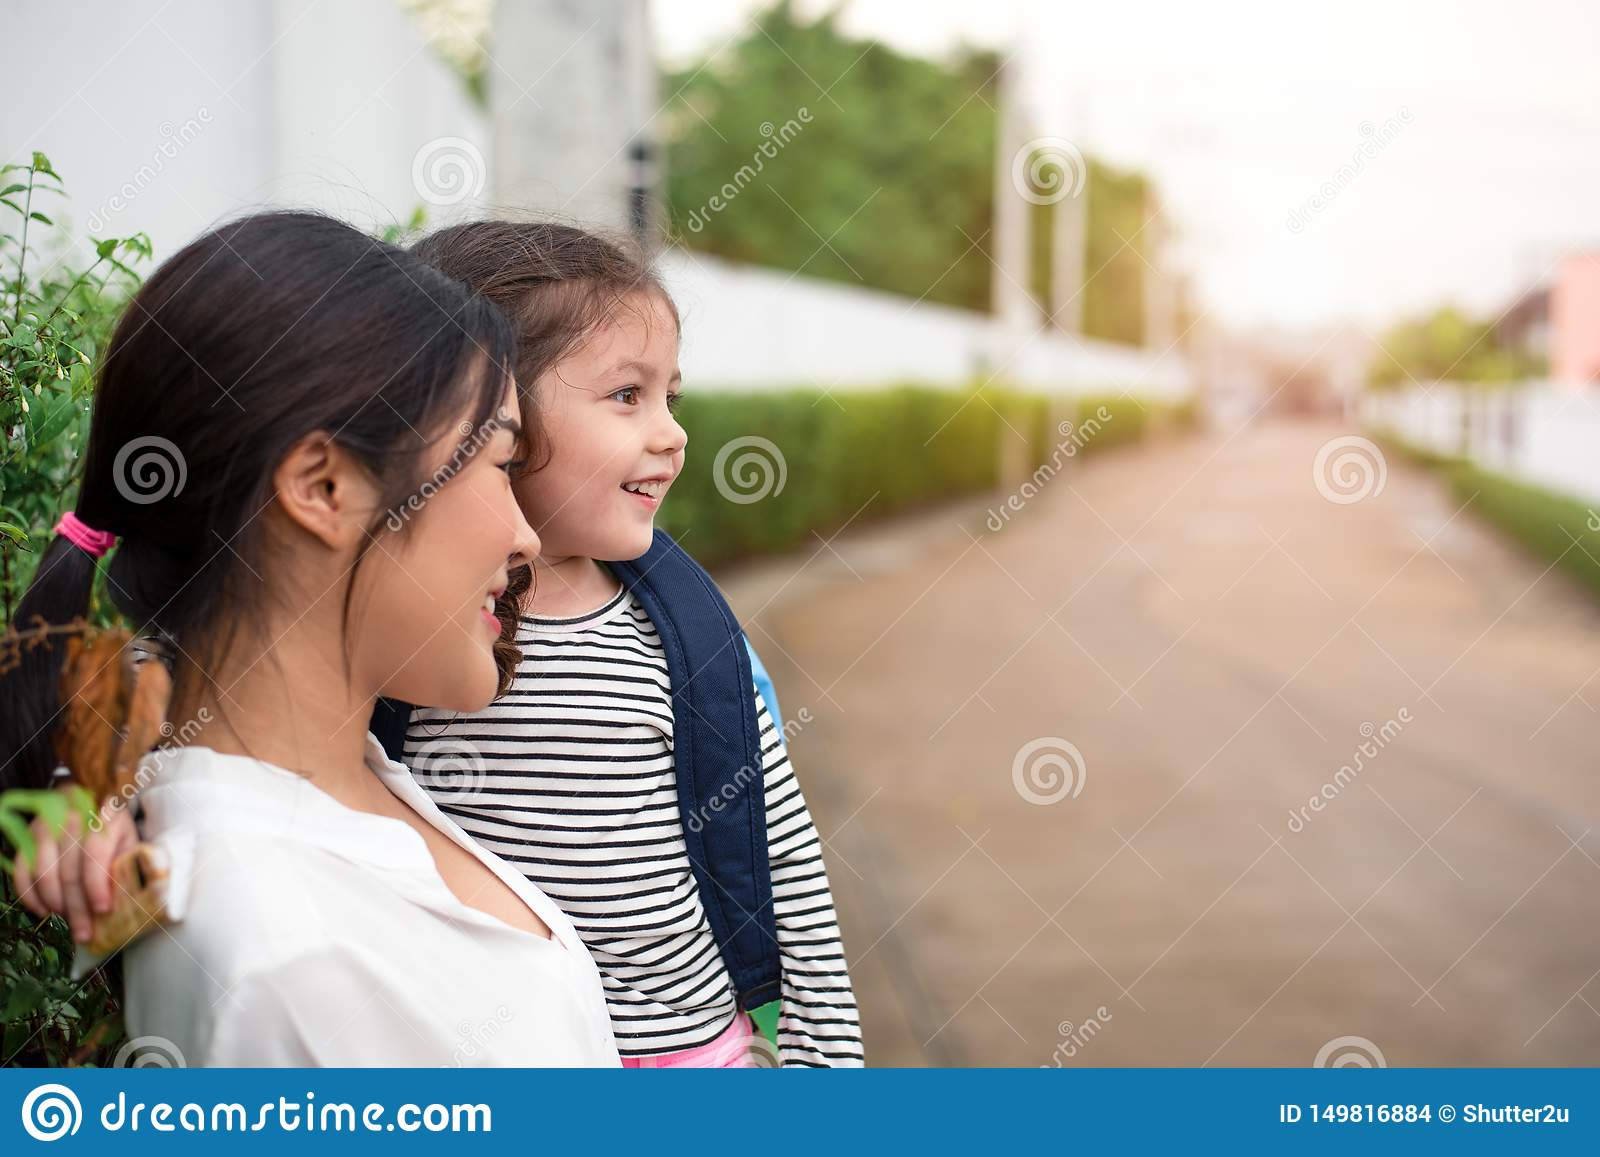 Mom and her daughter smiling together after going home from school. Love and daycare concept. Happy family and Home sweet home